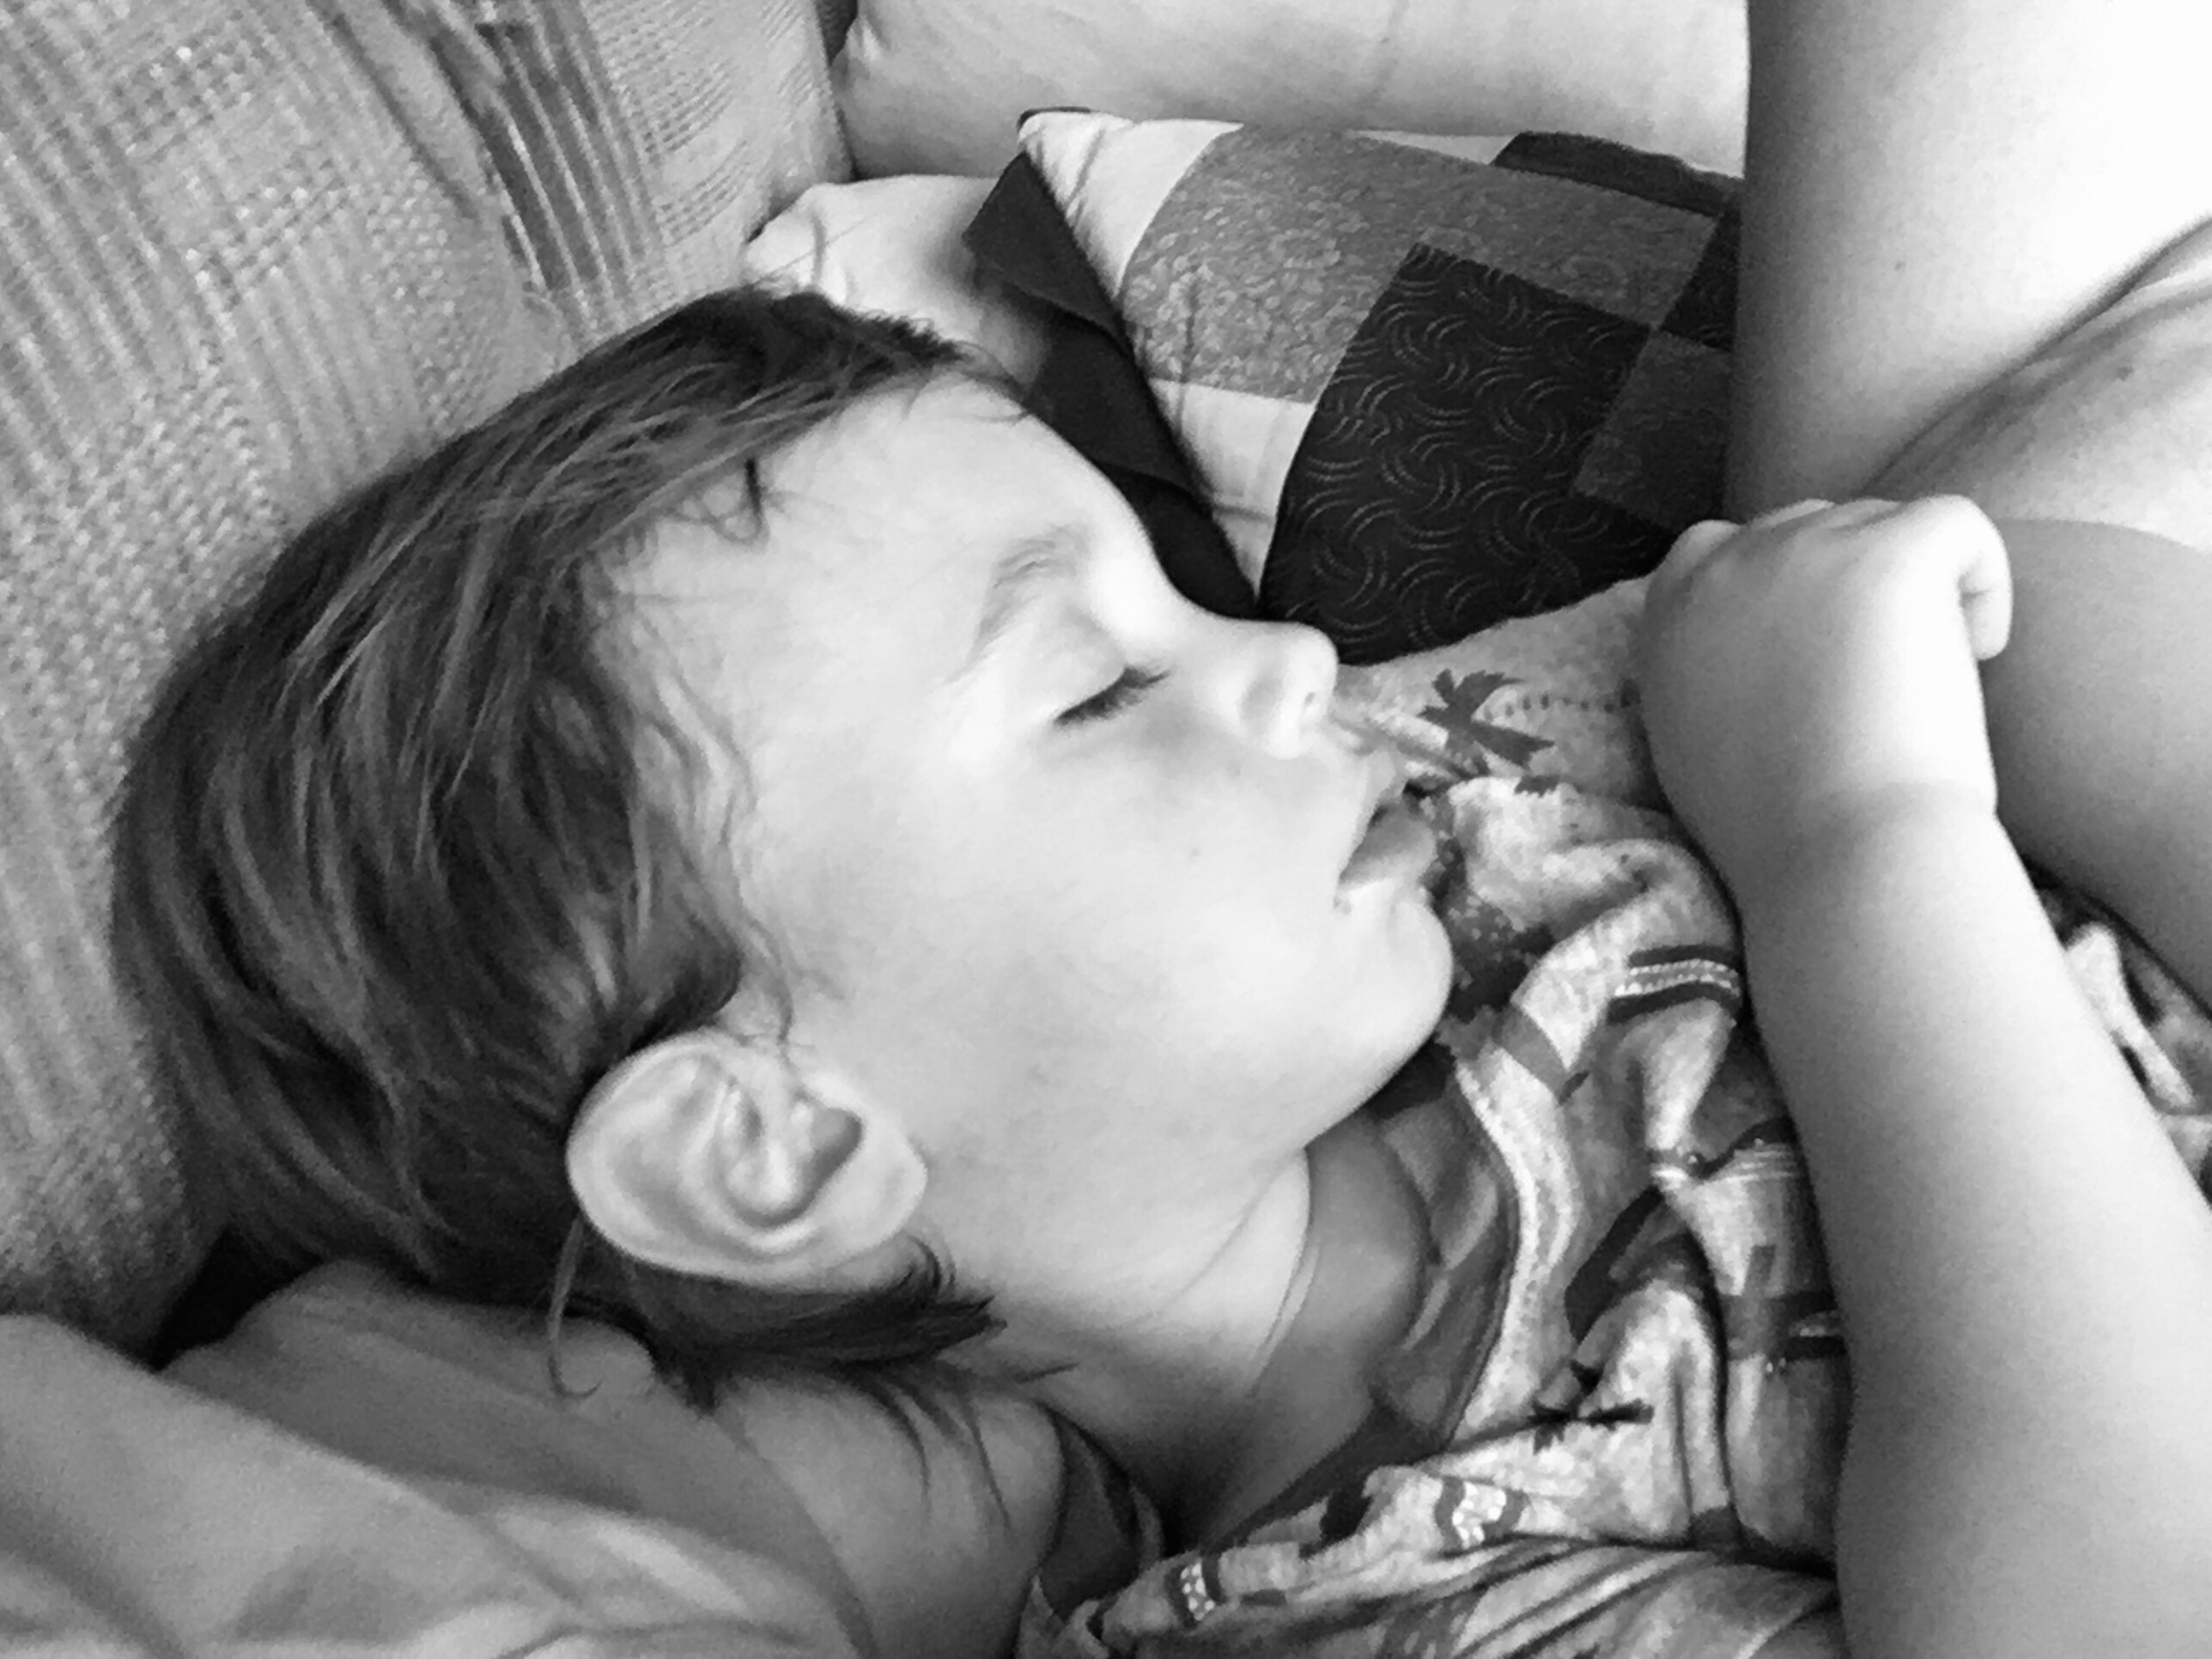 Young boy asleep in mother's arms